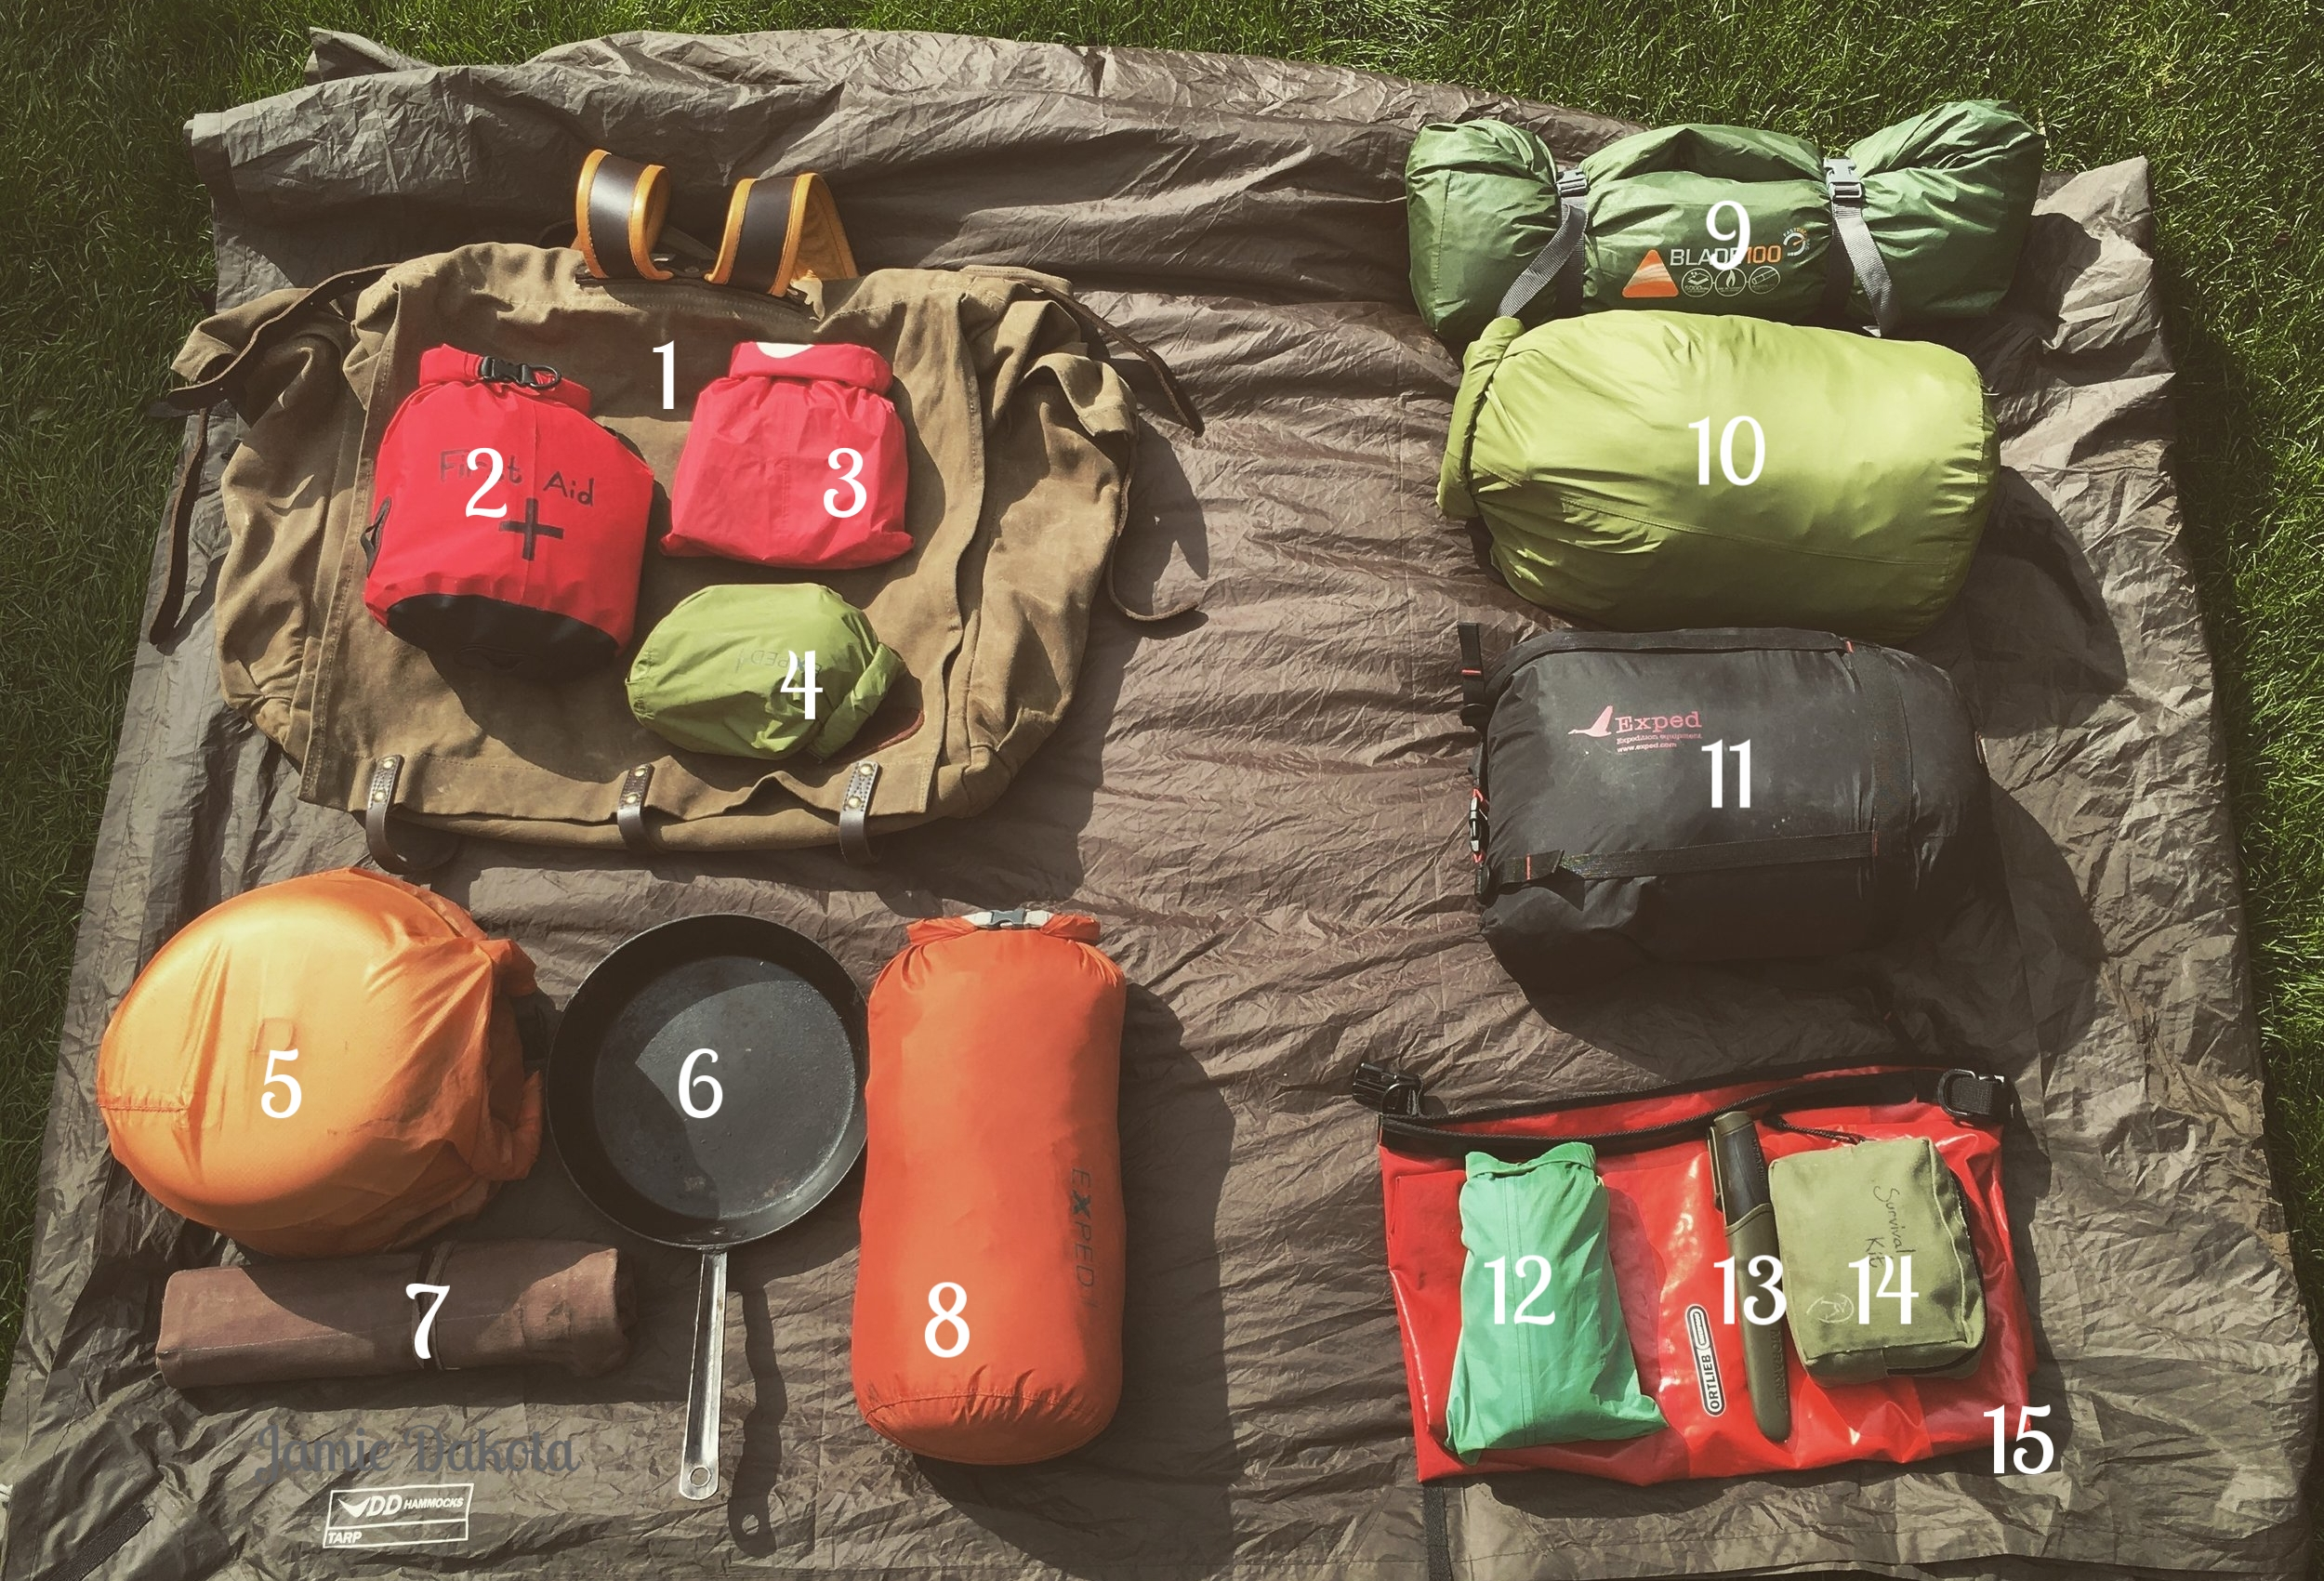 Communal kit on the left, personal gear on the right.